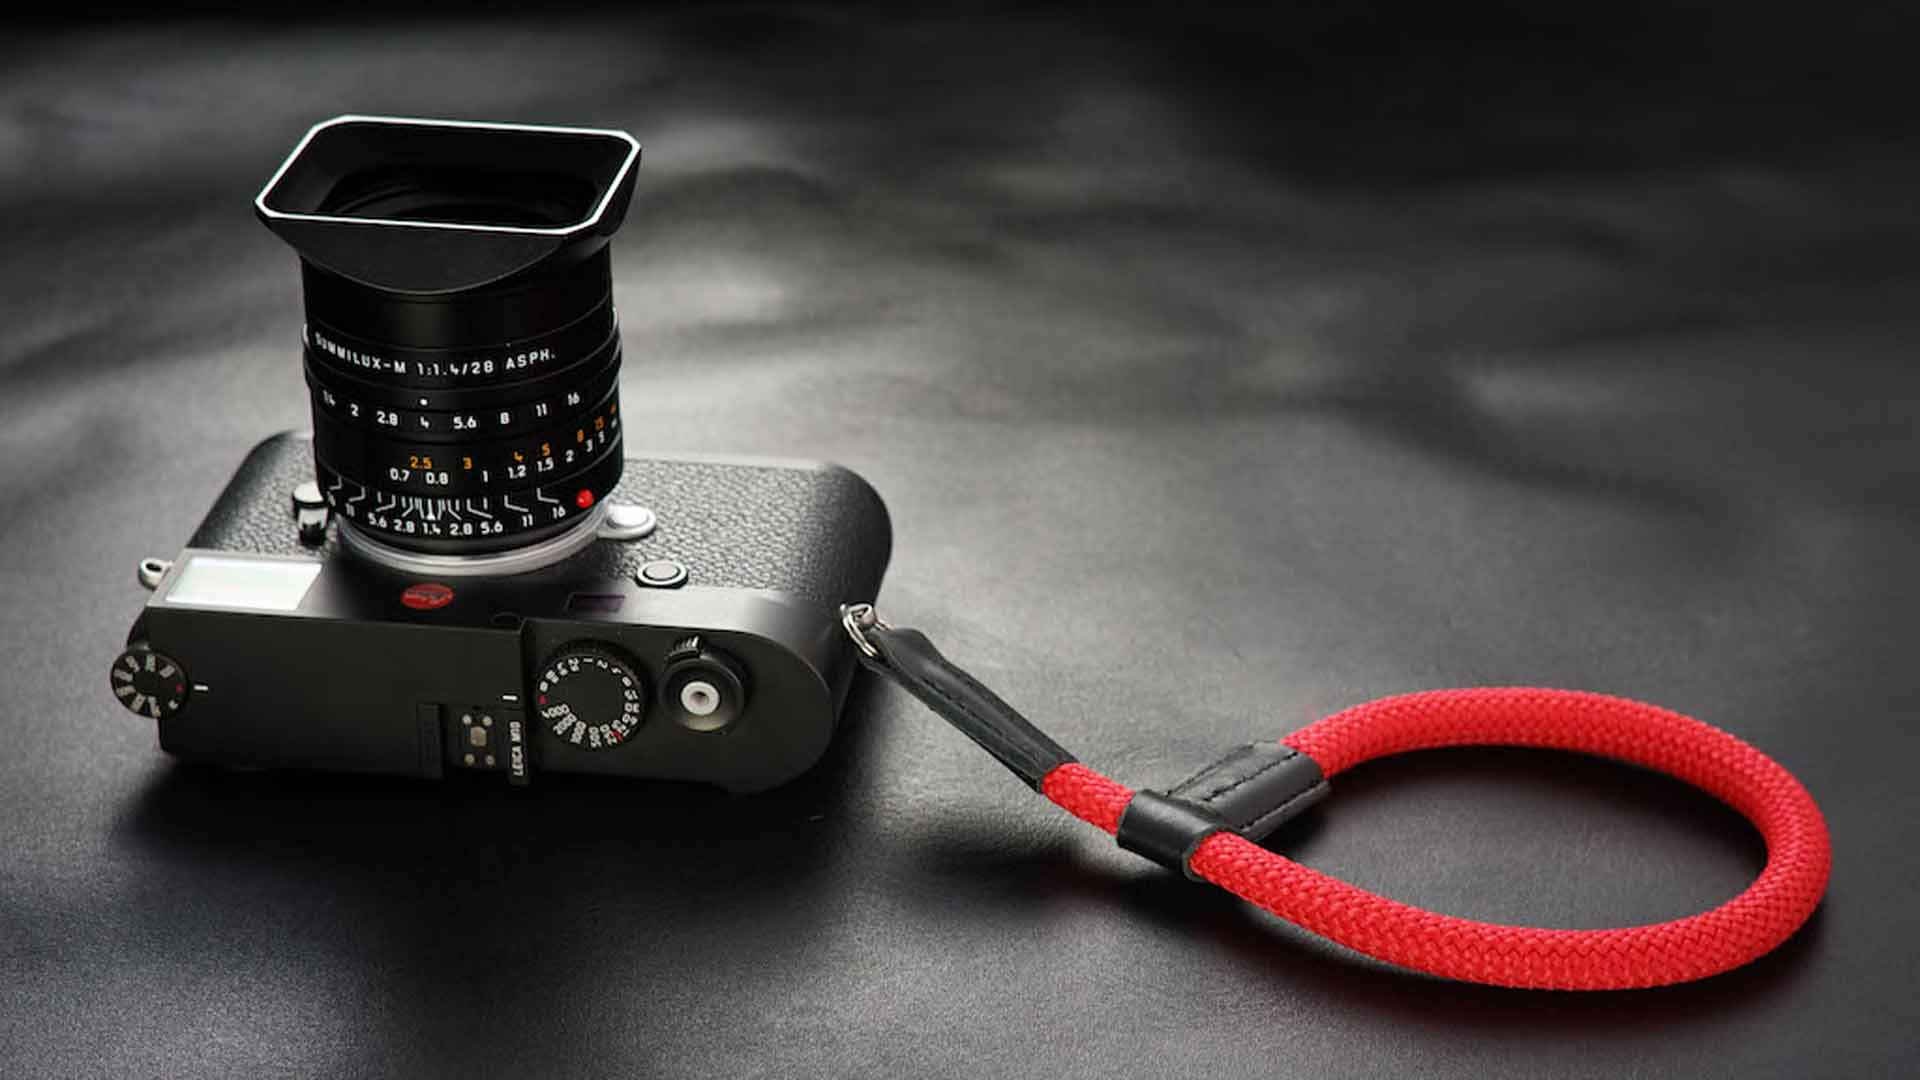 Top 10 Best Camera Wrist Strap Near Me Comparison